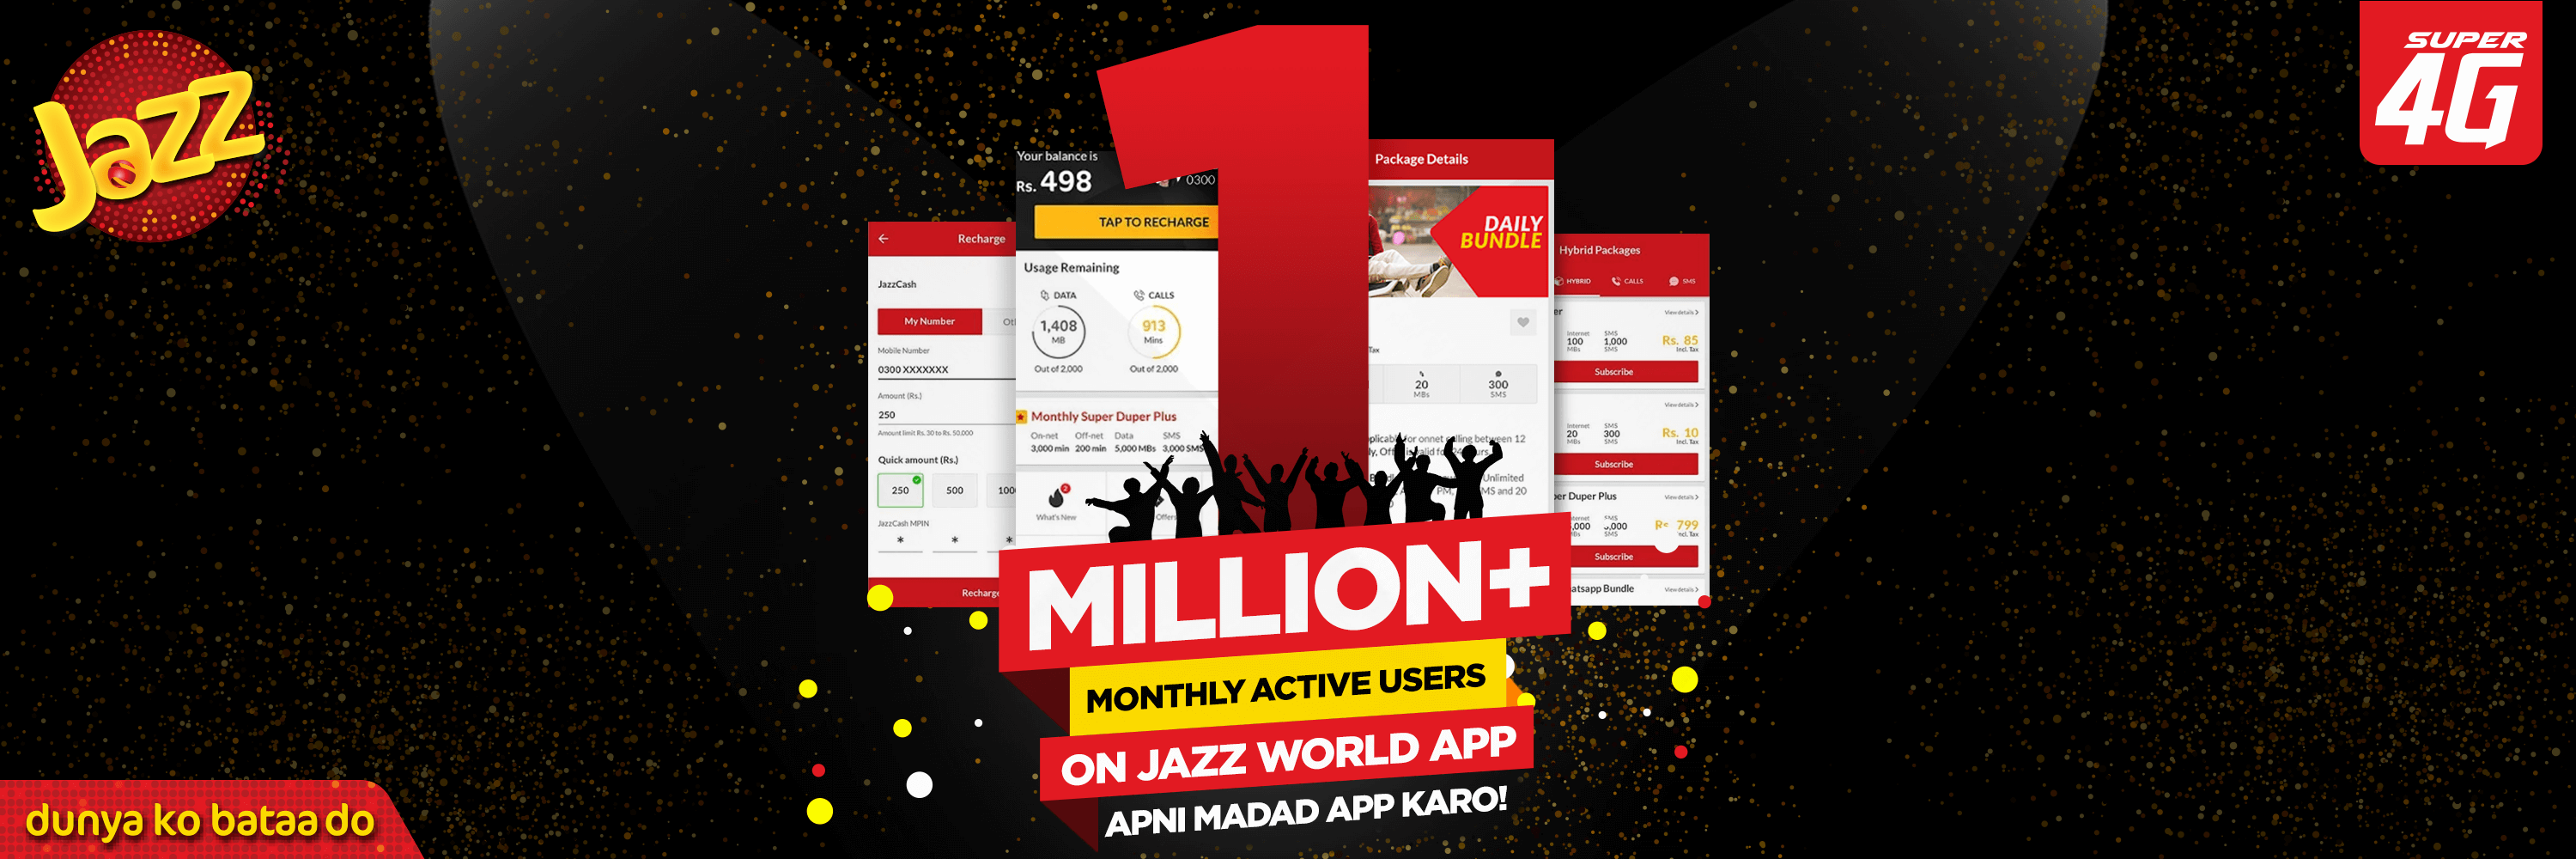 Jazz World Celebrates One Million Active Users